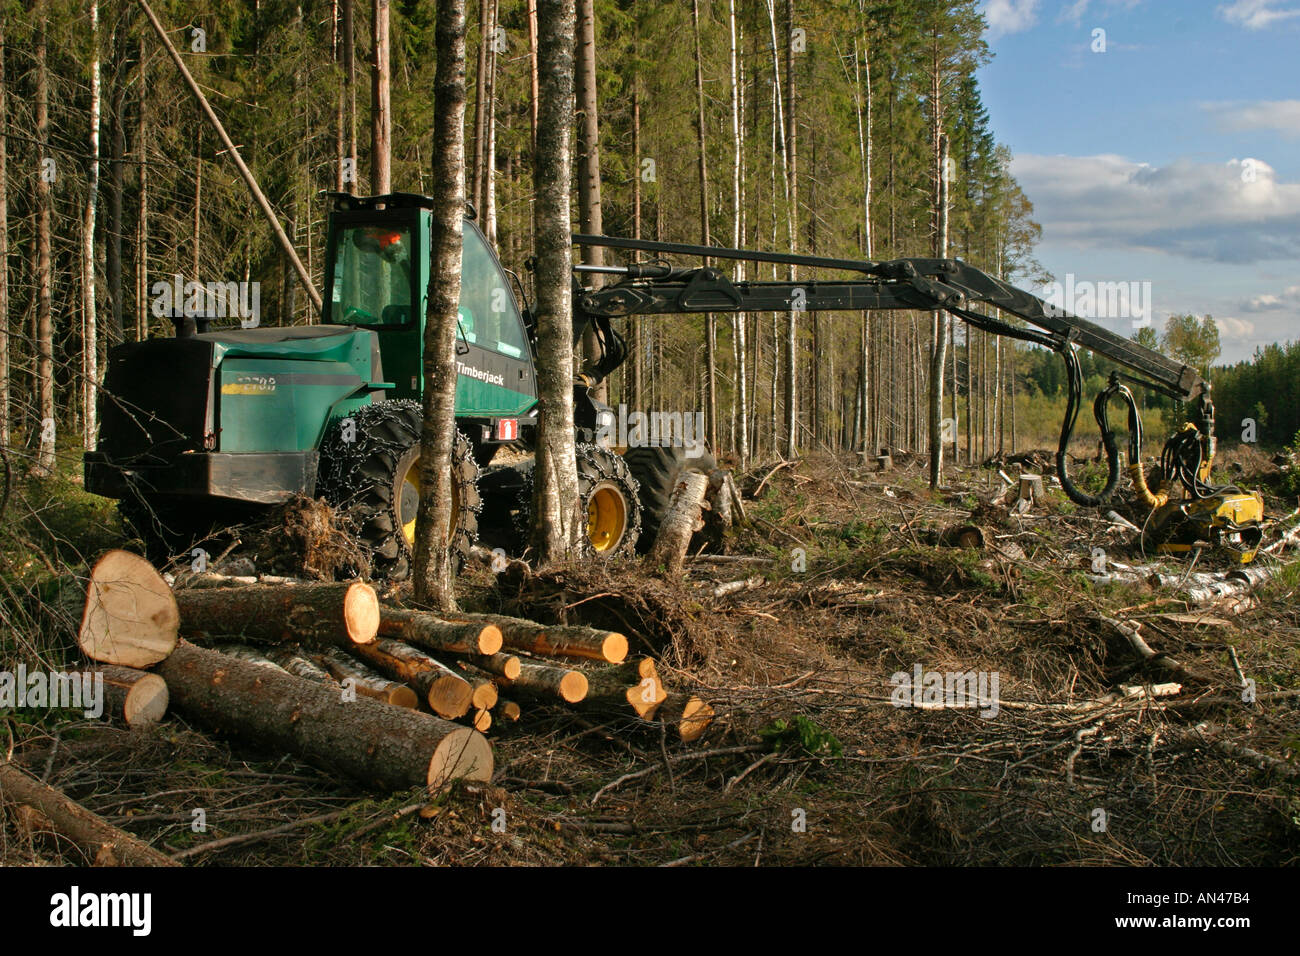 Forest cut down by a Timberjack forest harvester , Finland Stock Photo